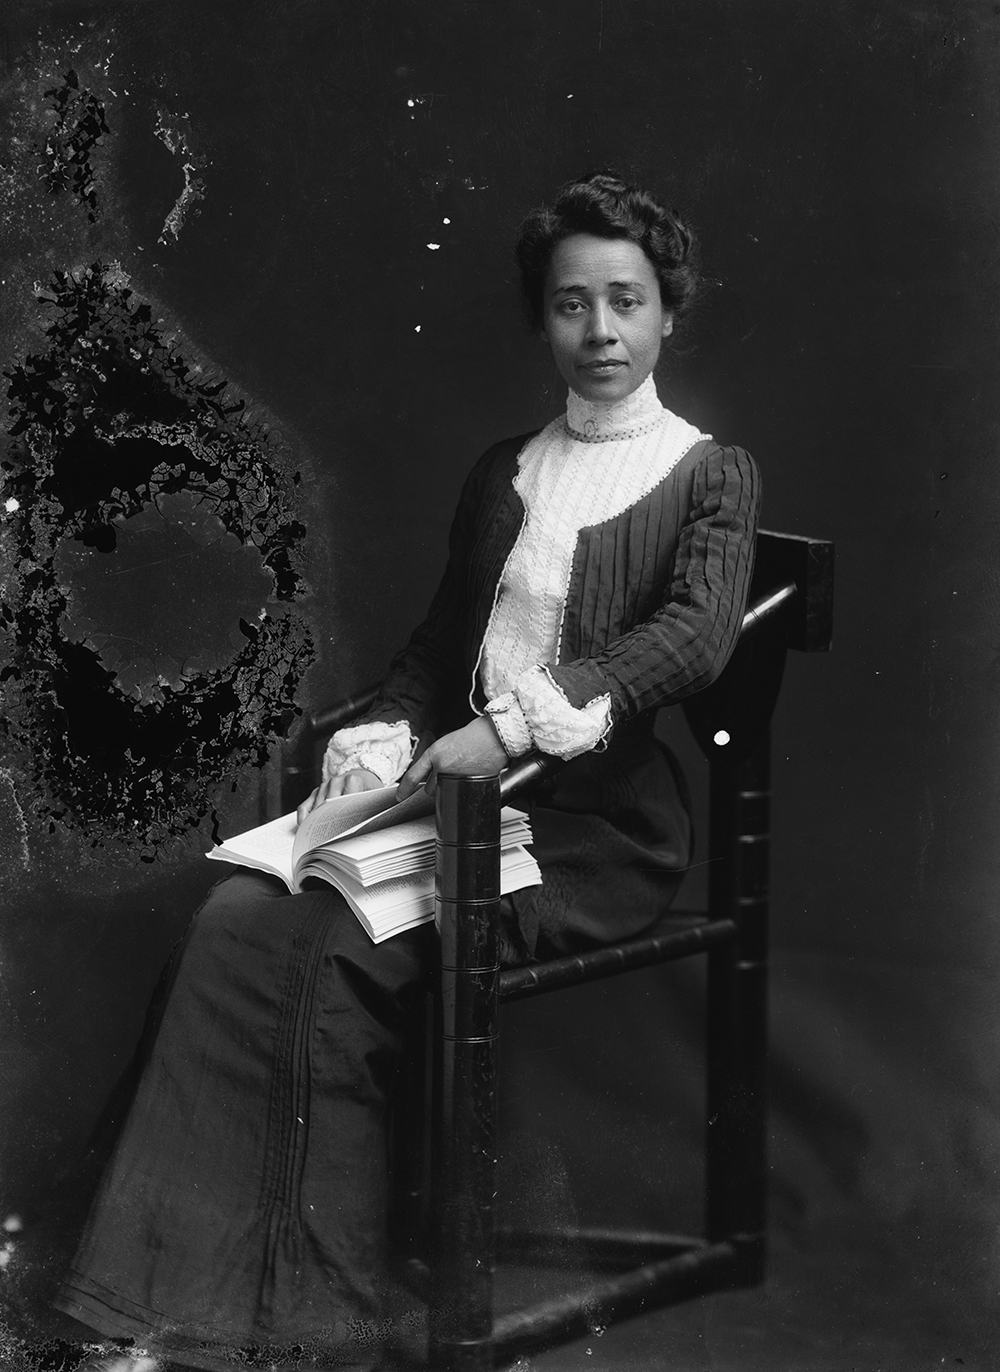 Anna Julia Cooper, c. 1901. Photograph by C.M. Bell. Library of Congress, Prints and Photographs Division.